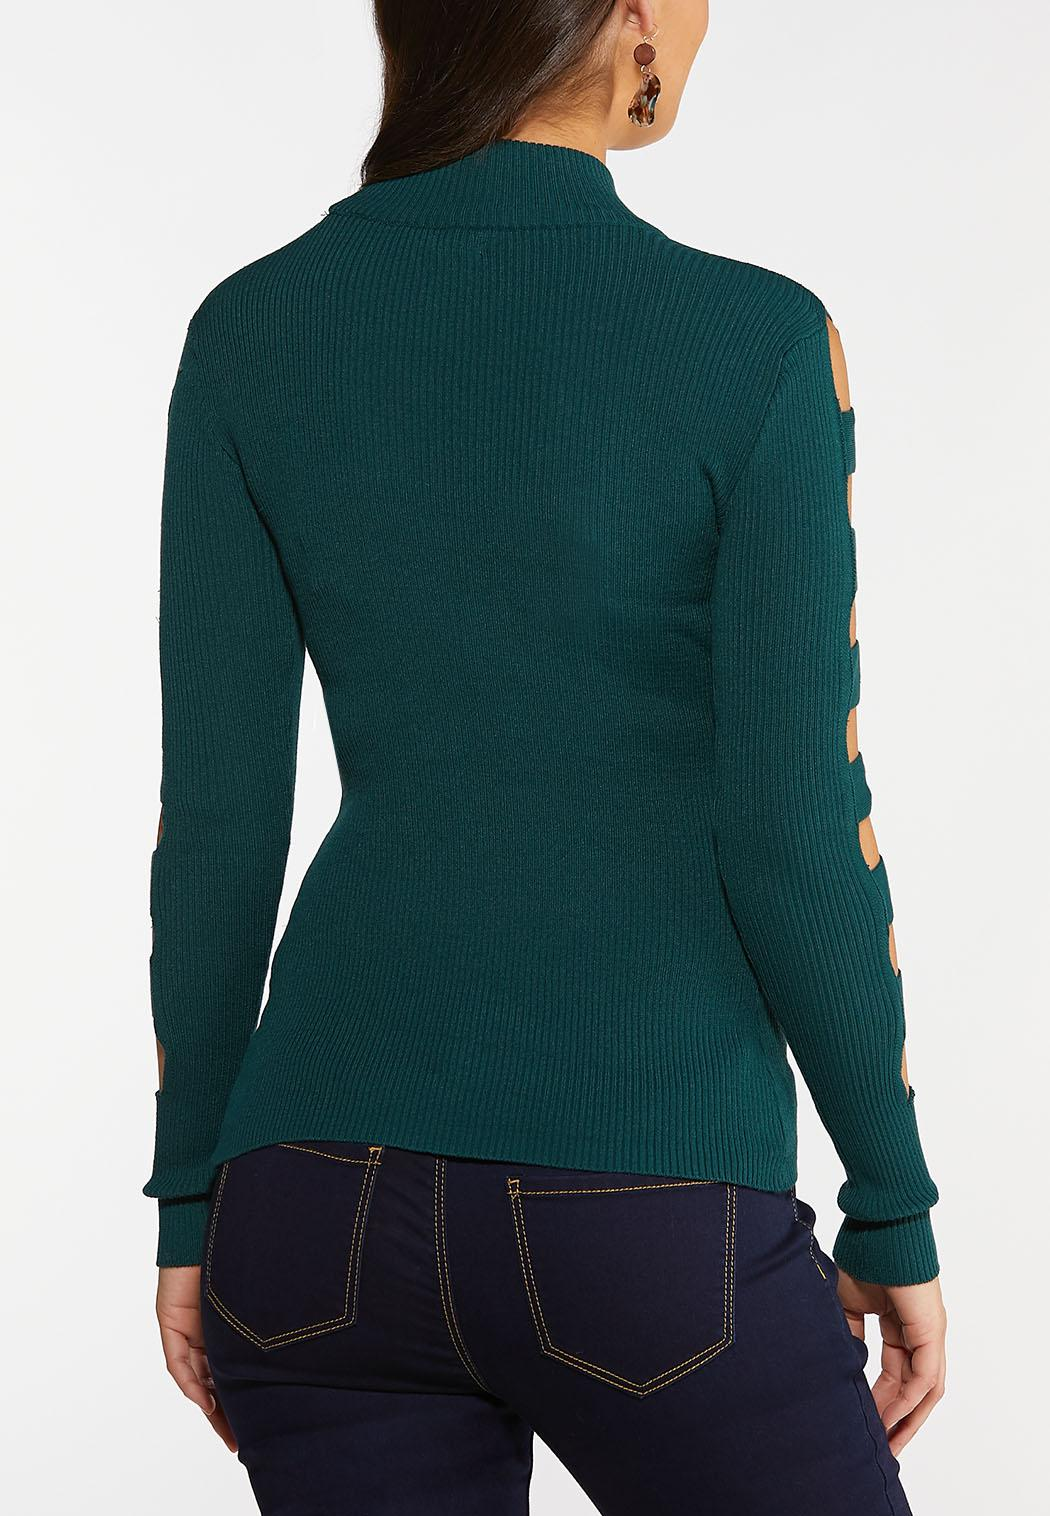 Ladder Sleeve Pullover Sweater (Item #44026899)